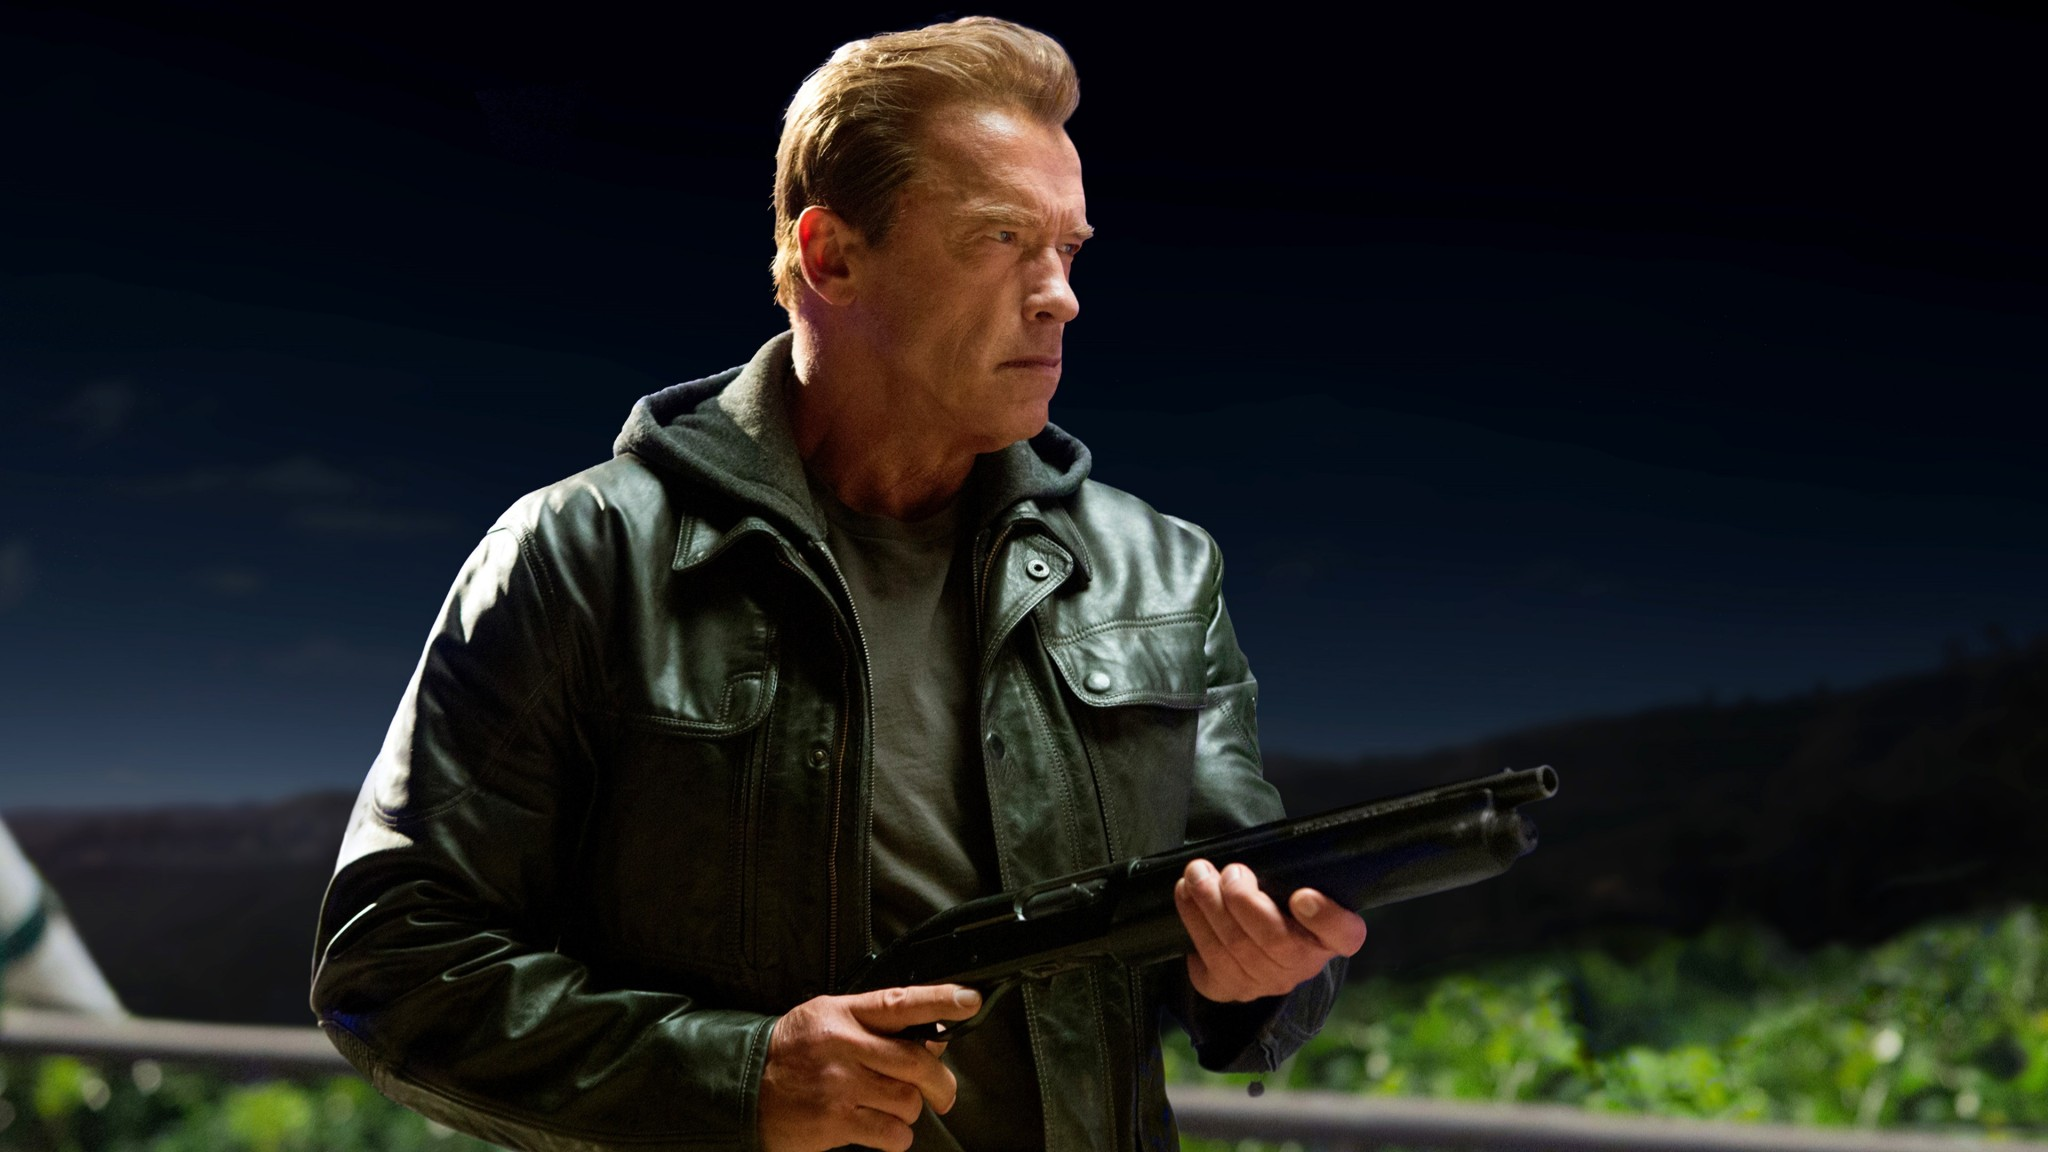 Terminator Genisys - Super Bowl trailer